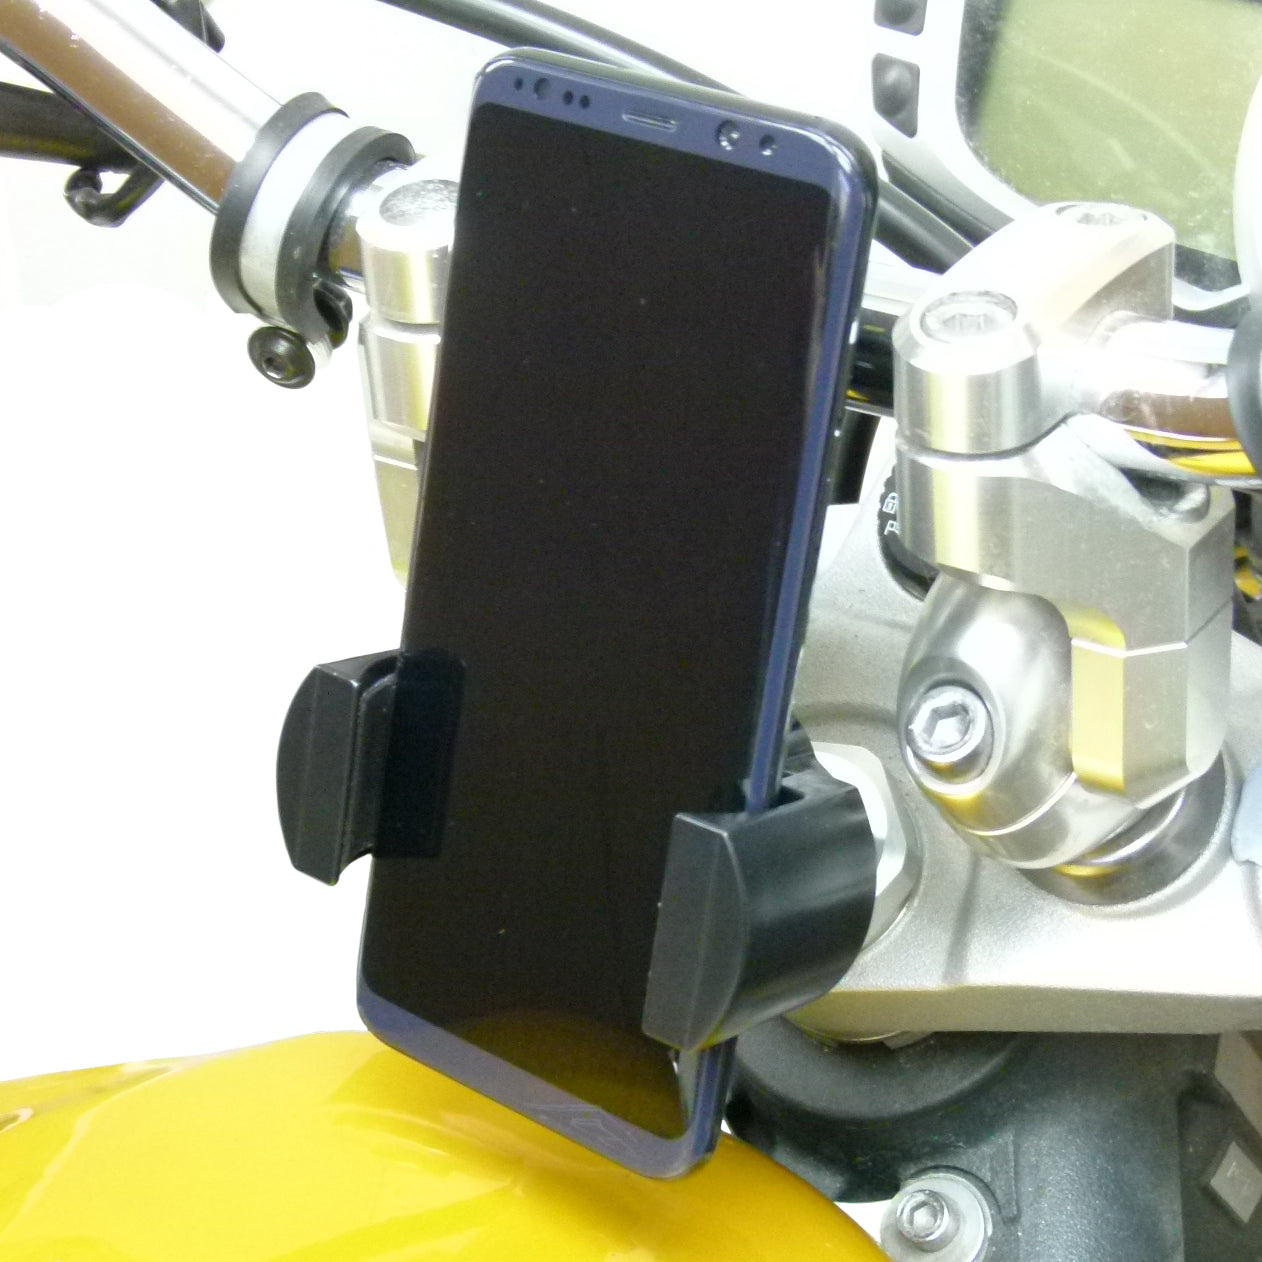 Honda VFR750F (1991-1997) 19mm Stem Motorbike Mount For Samsung Galaxy S10 5G (sku 44400)